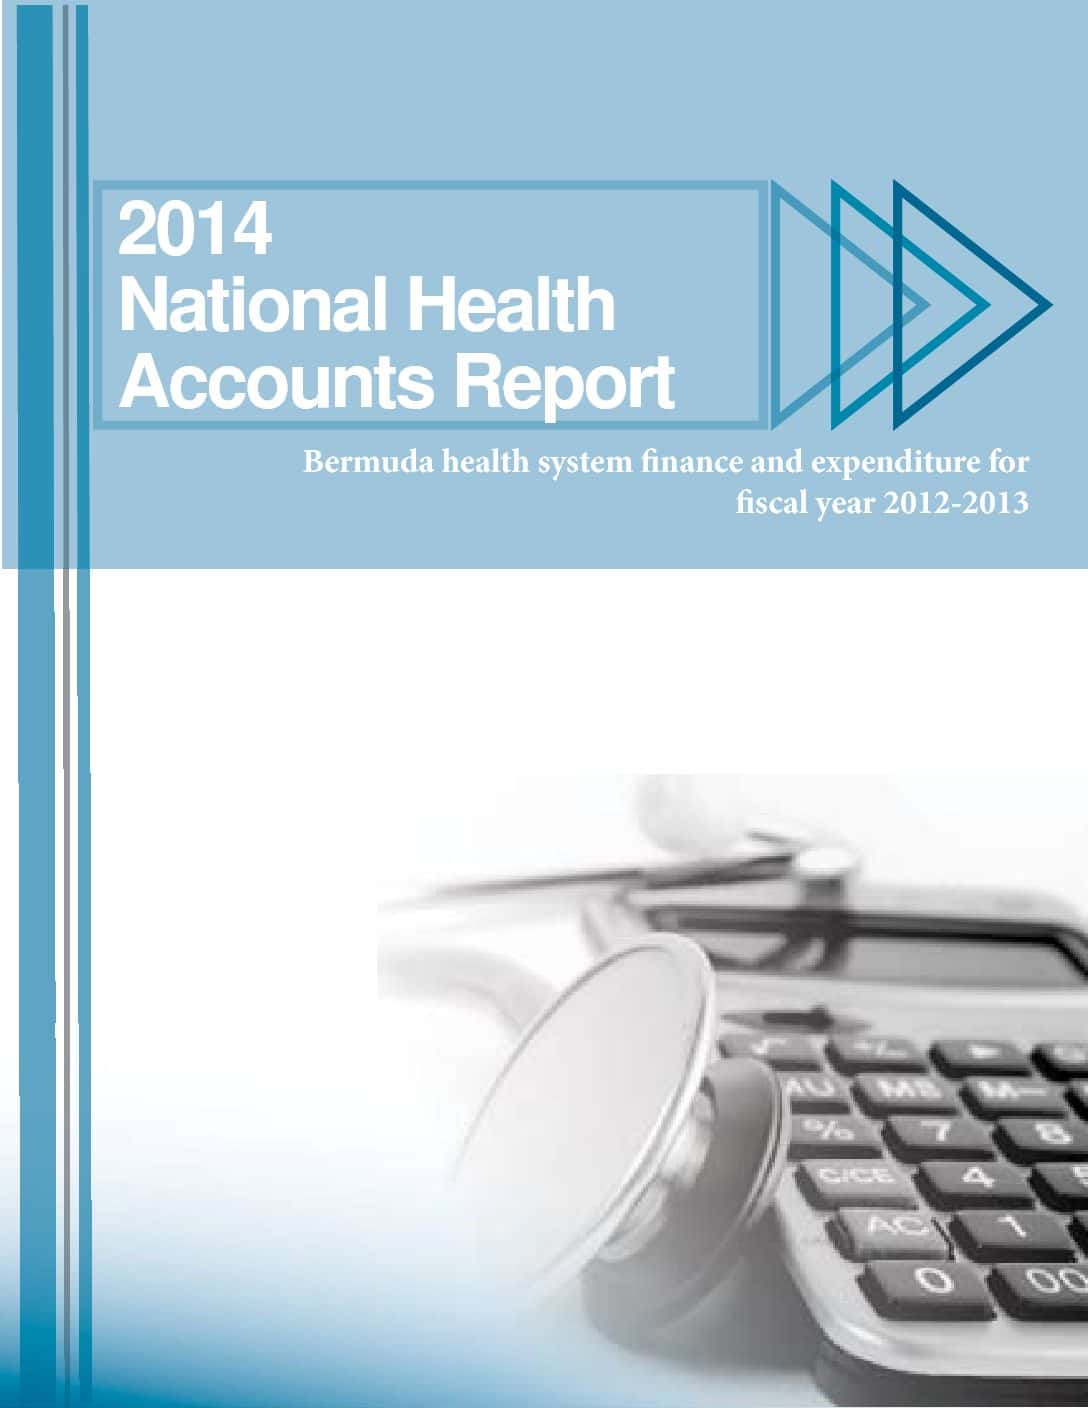 2014 National Health Accounts